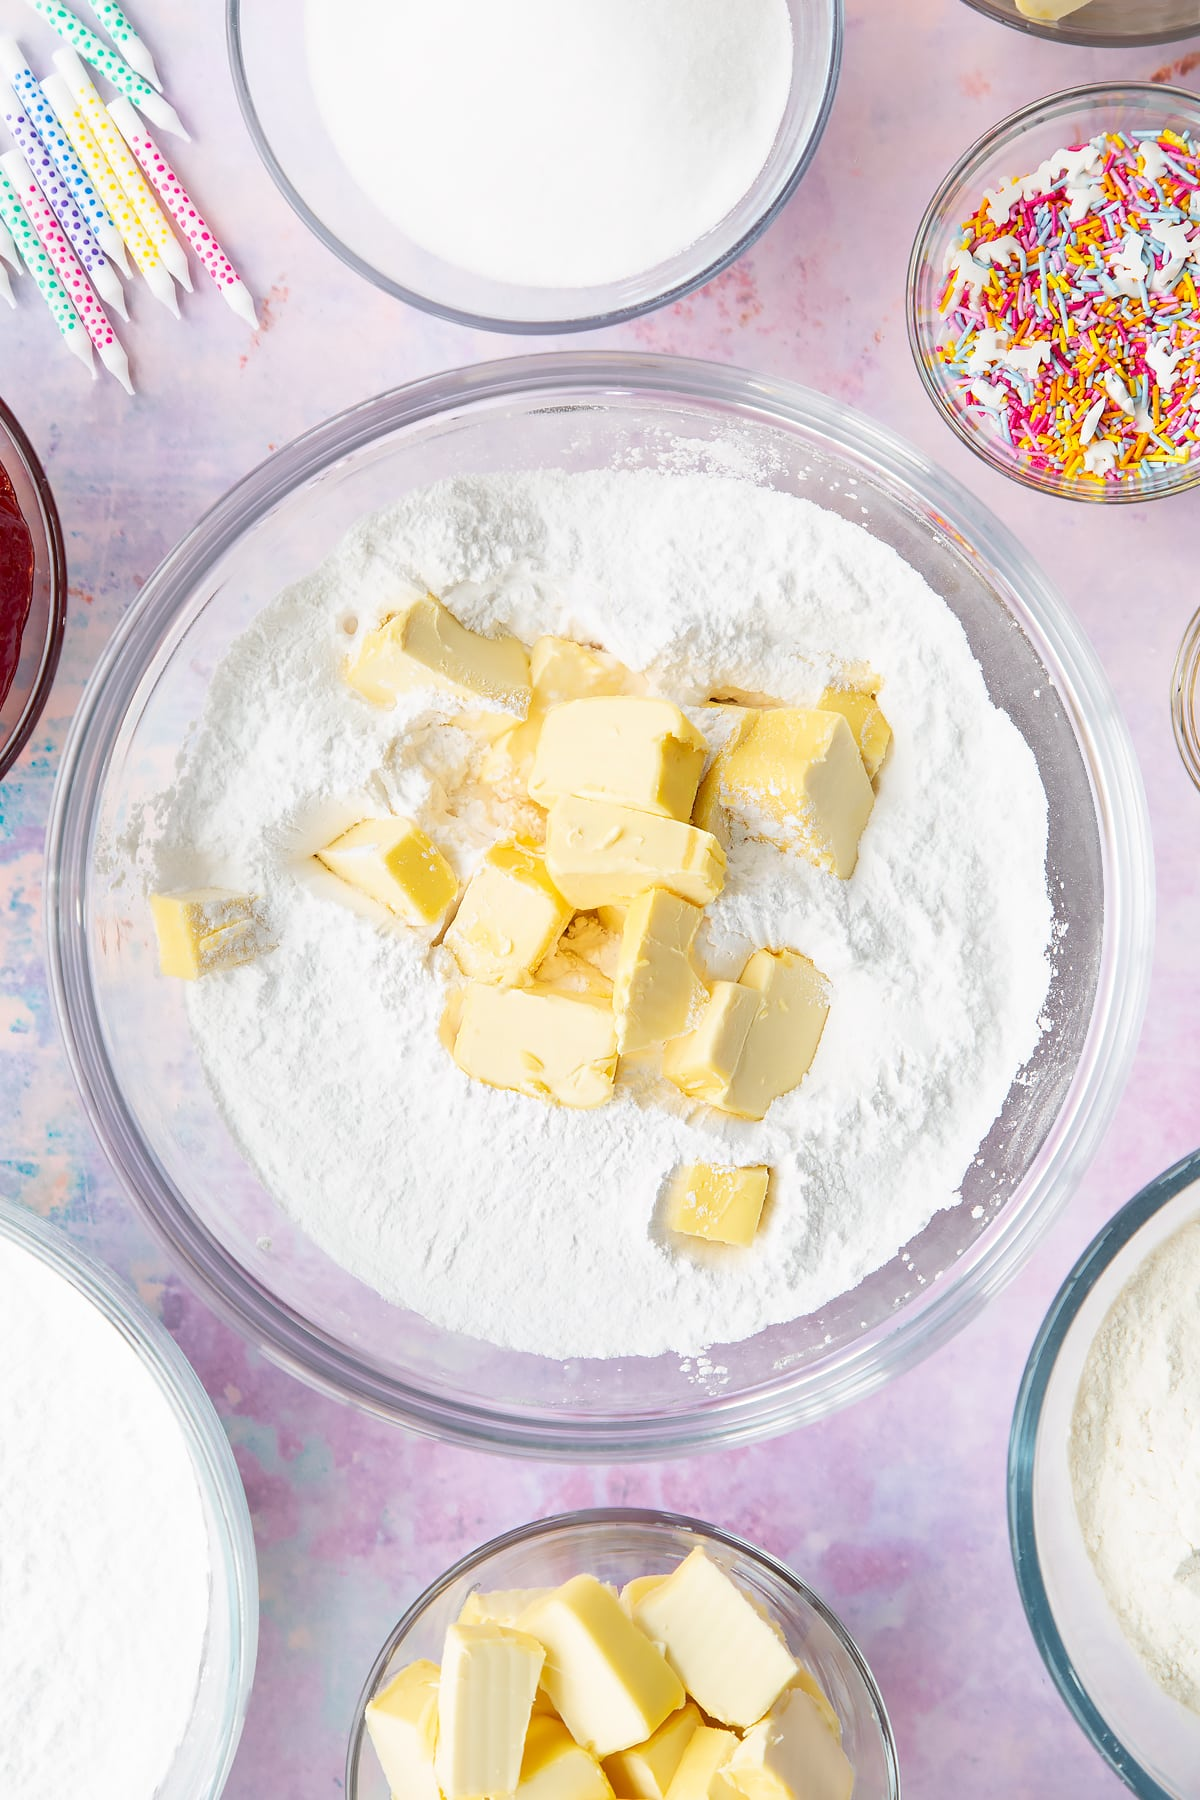 Vegan butter, icing sugar, vanilla extract and plant milk in a glass mixing bowl. Ingredients to make vegan birthday cake surround the bowl.